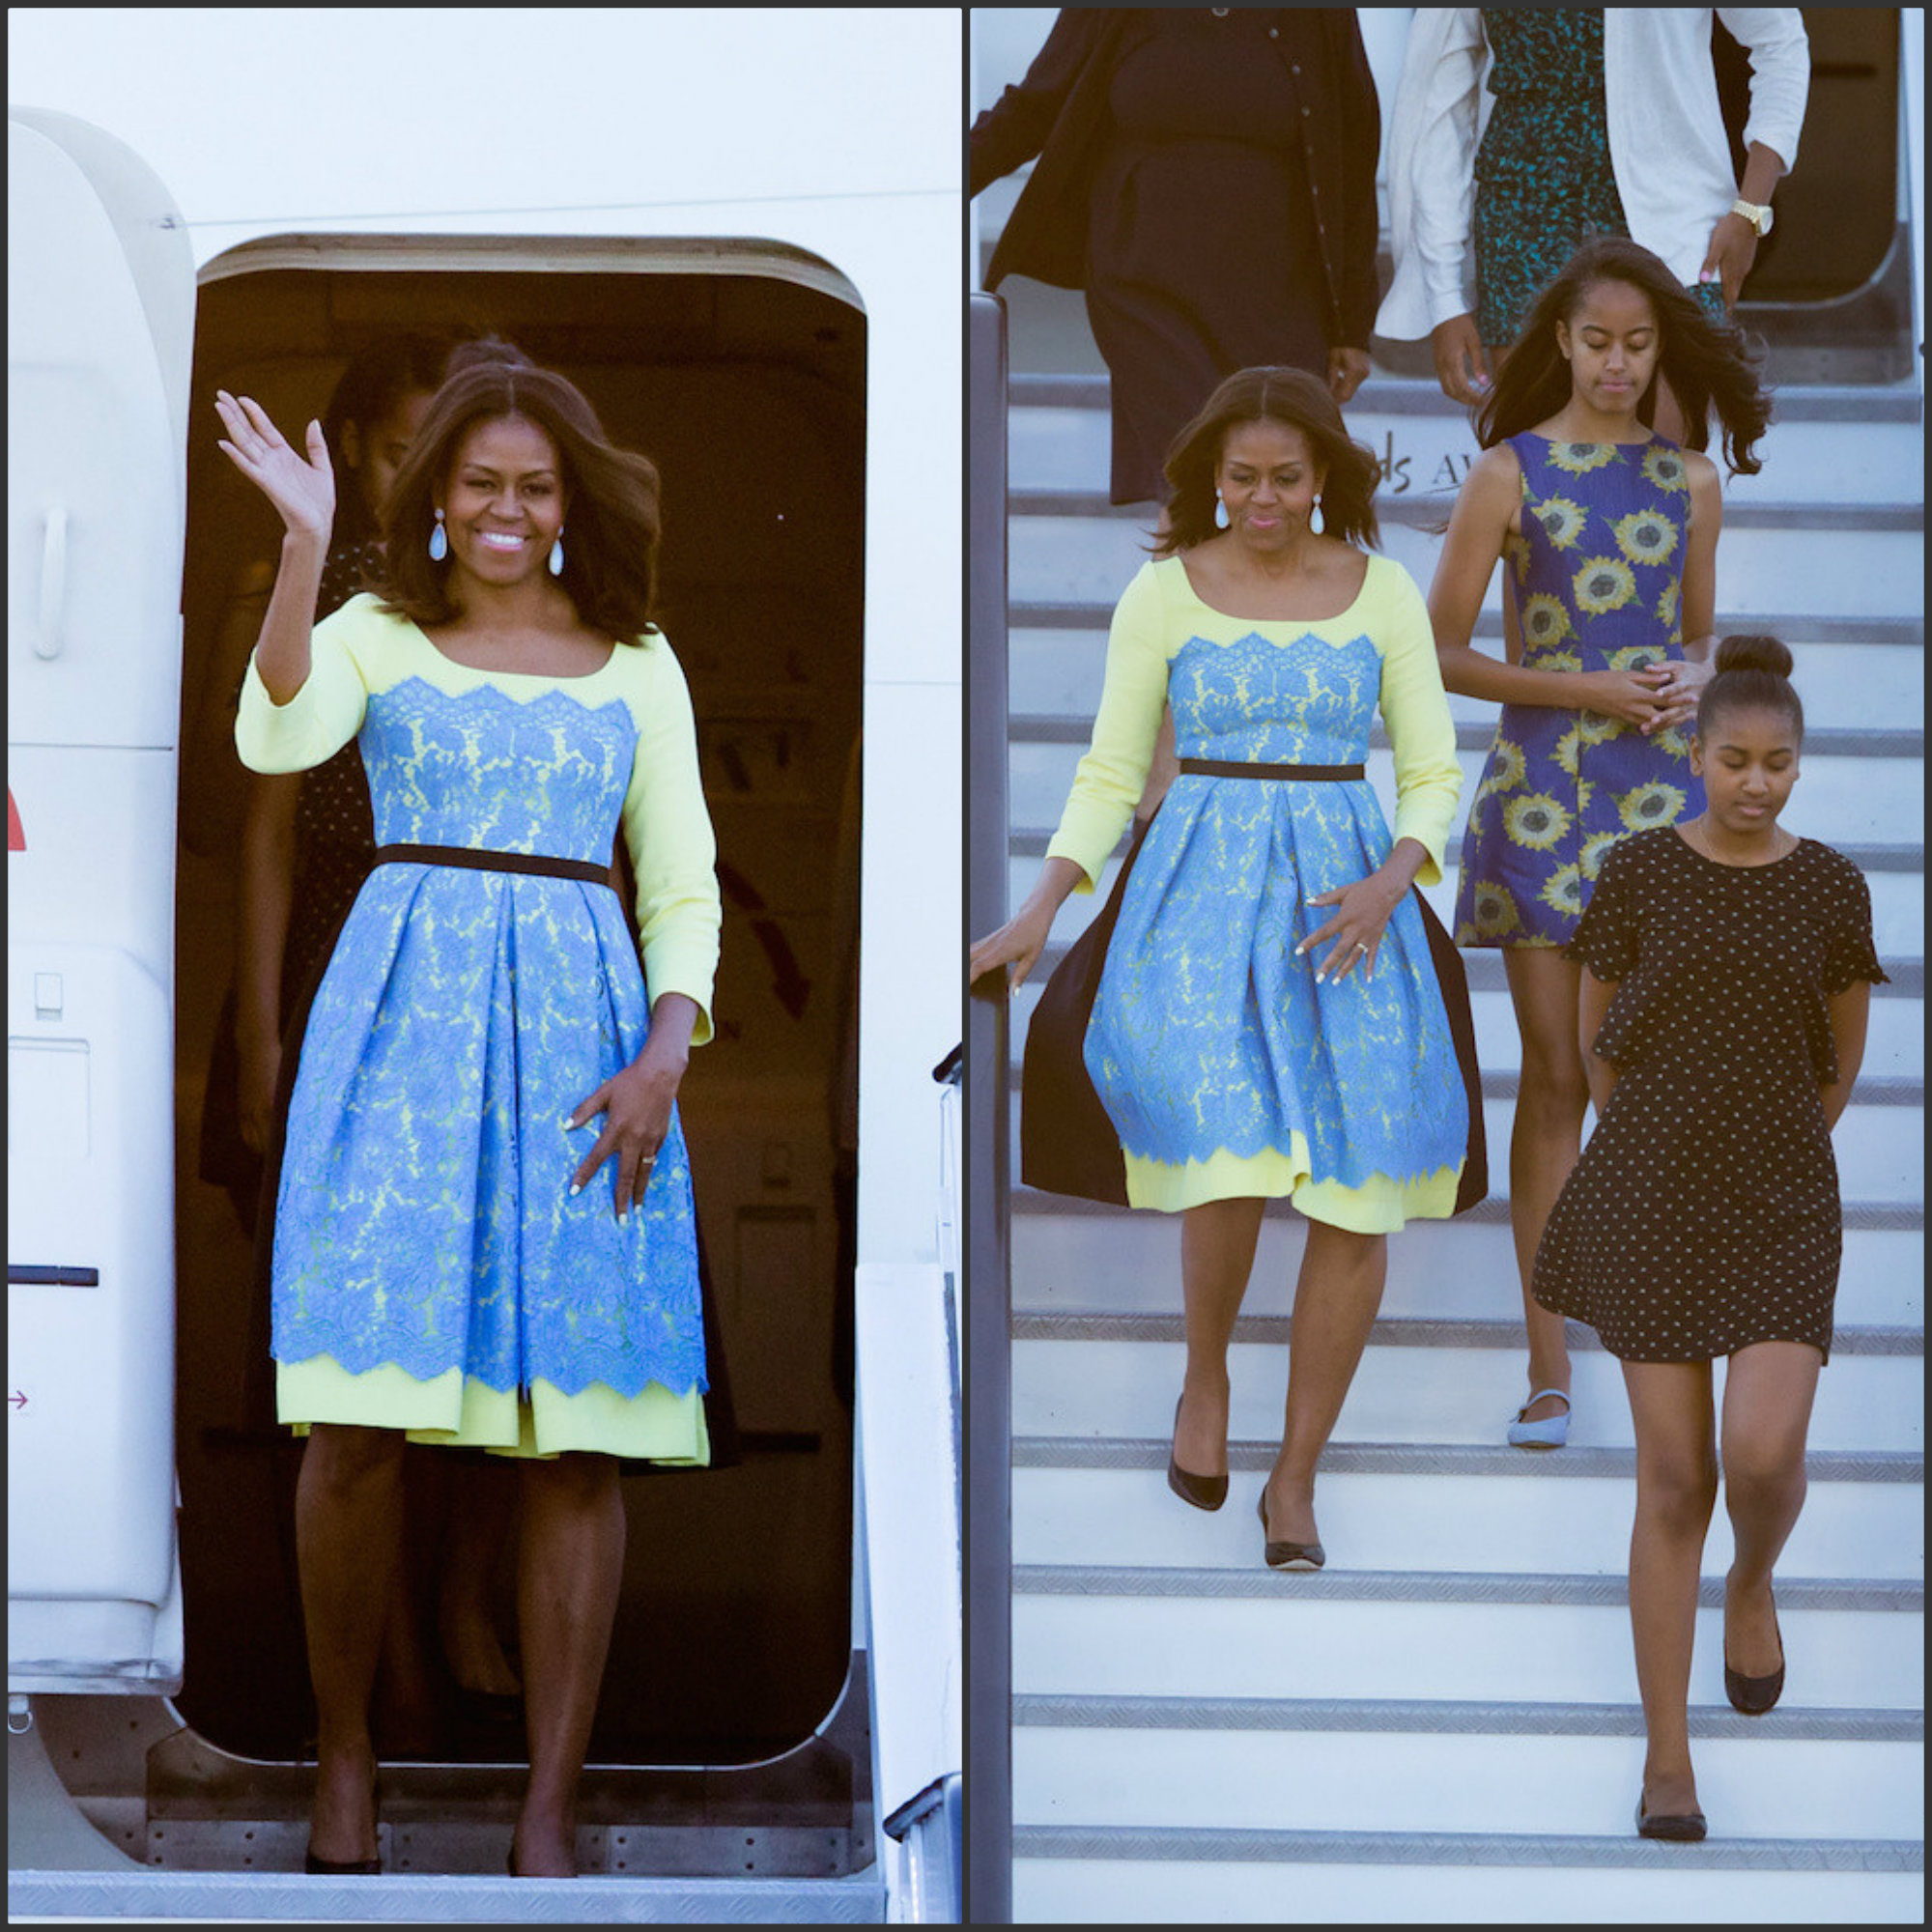 first-lady-michellle-obama-wears-preen-by-thornton-bregazzi-dress-trip-to-the-uk